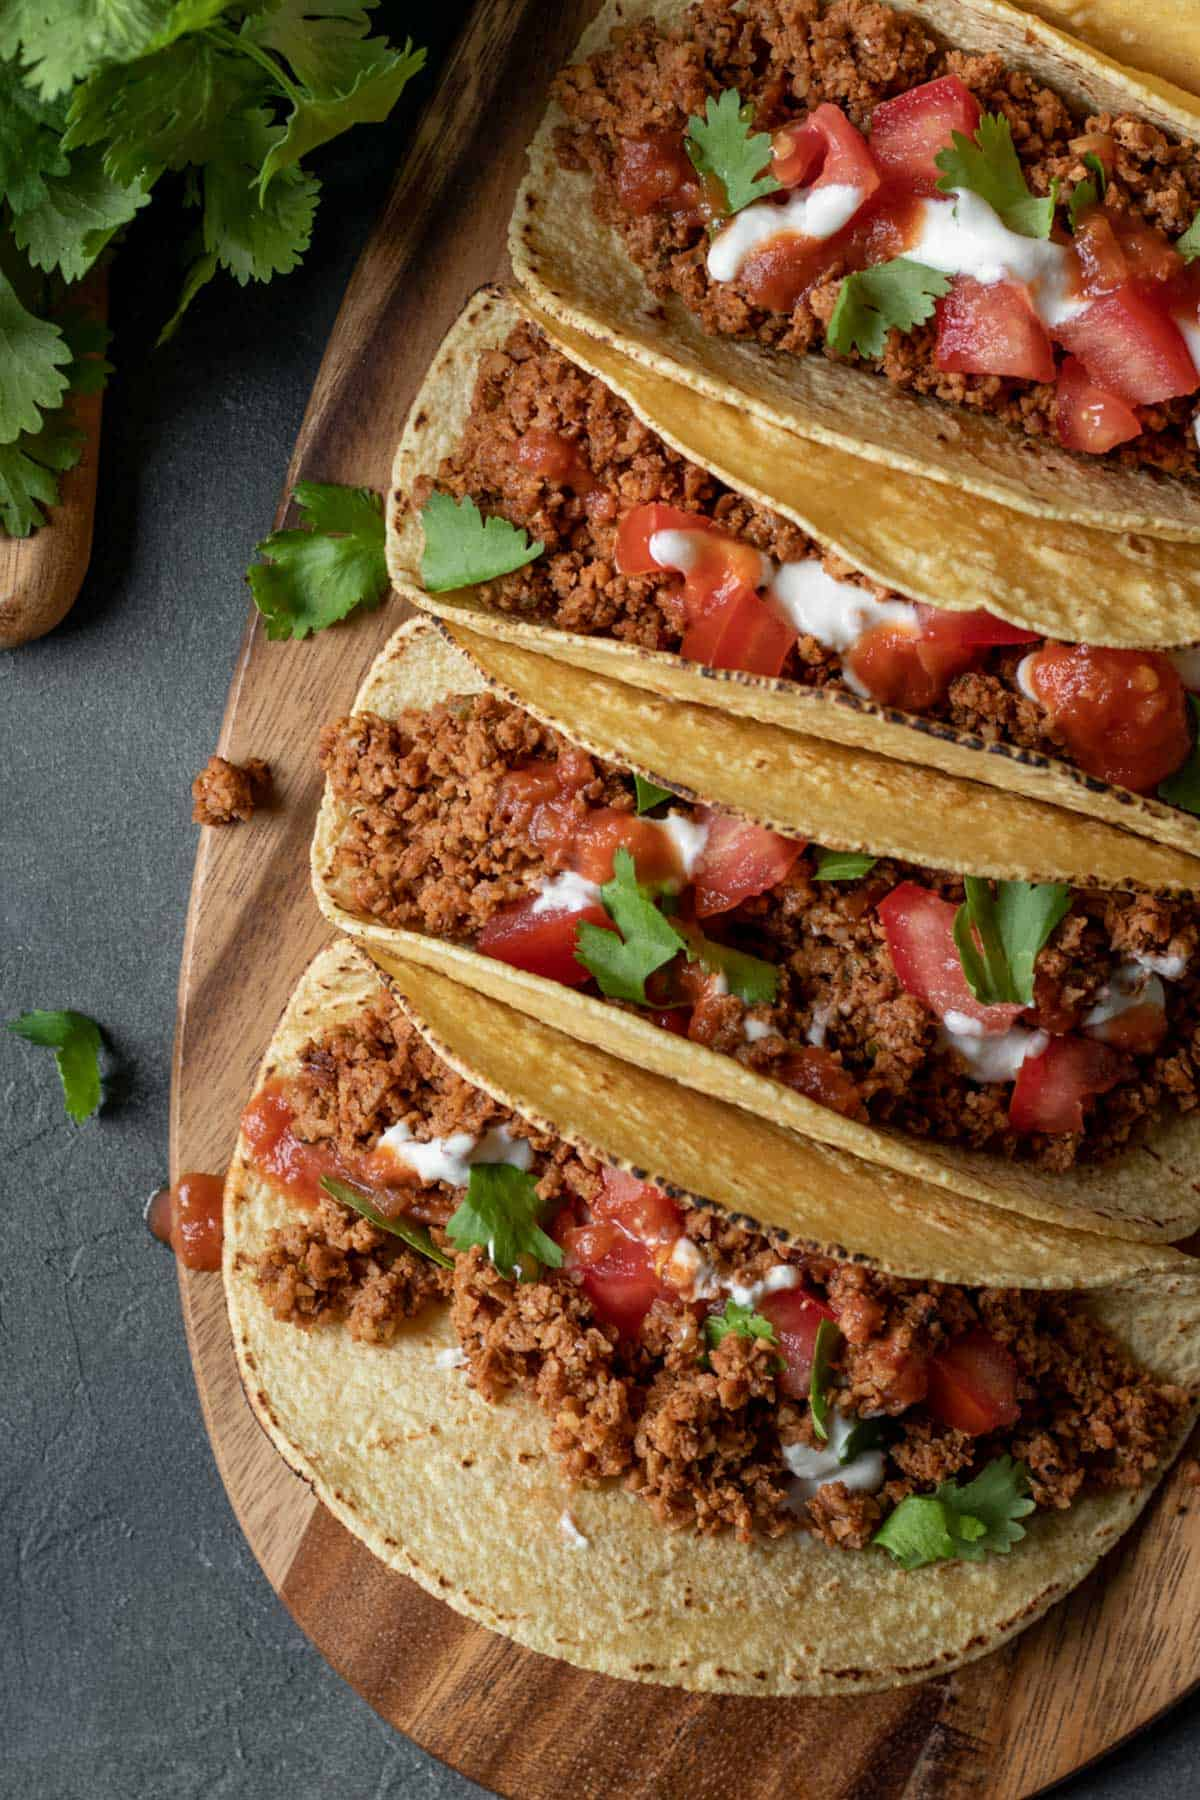 soy curl tacos lined up on a wood board.